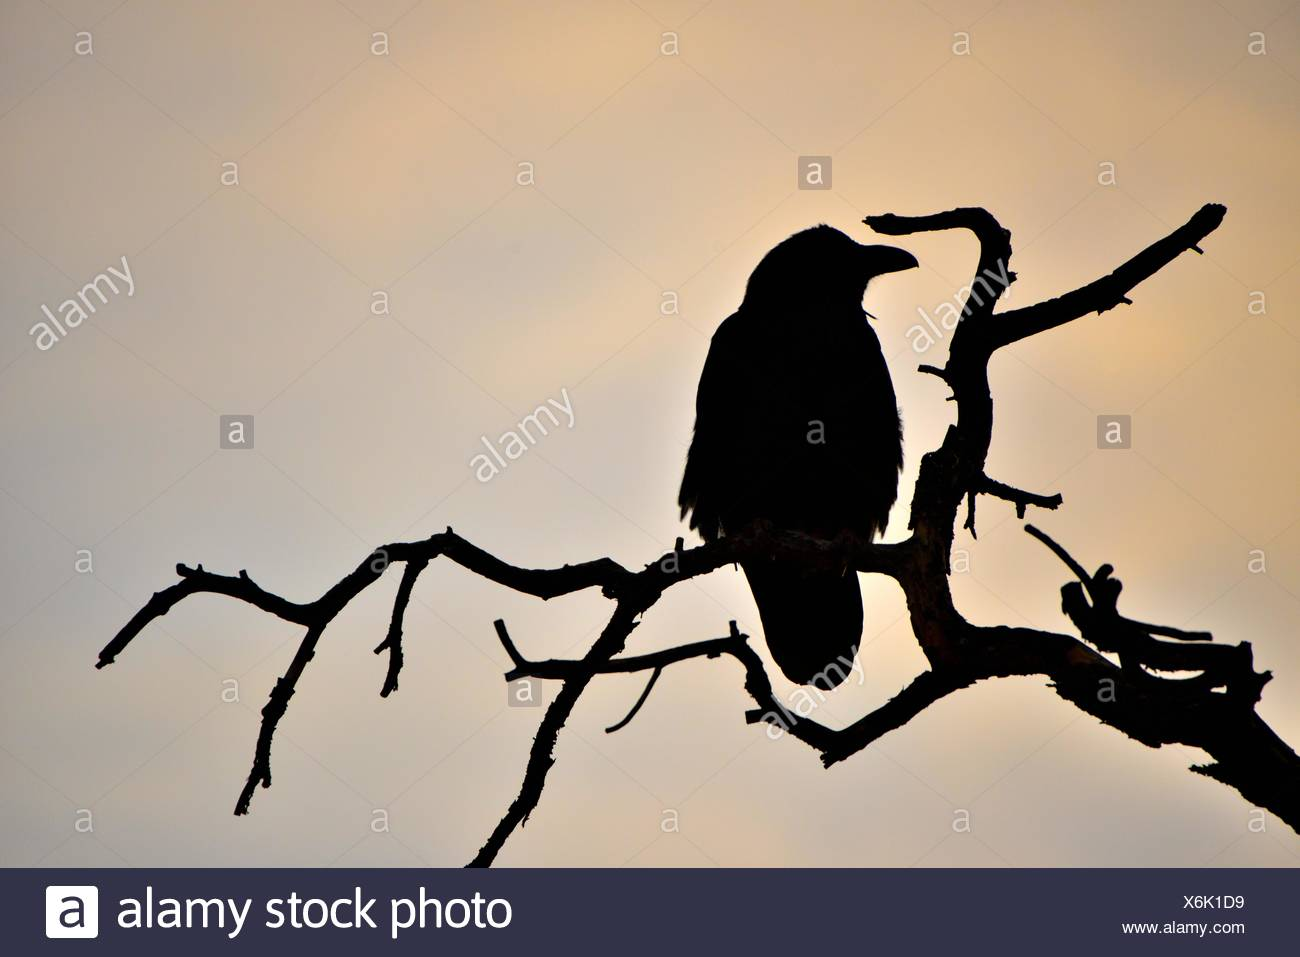 Raven Silhouette On A Tree Branch Stock Photo Alamy Affordable and search from millions of royalty free images, photos and vectors. https www alamy com raven silhouette on a tree branch image279472069 html